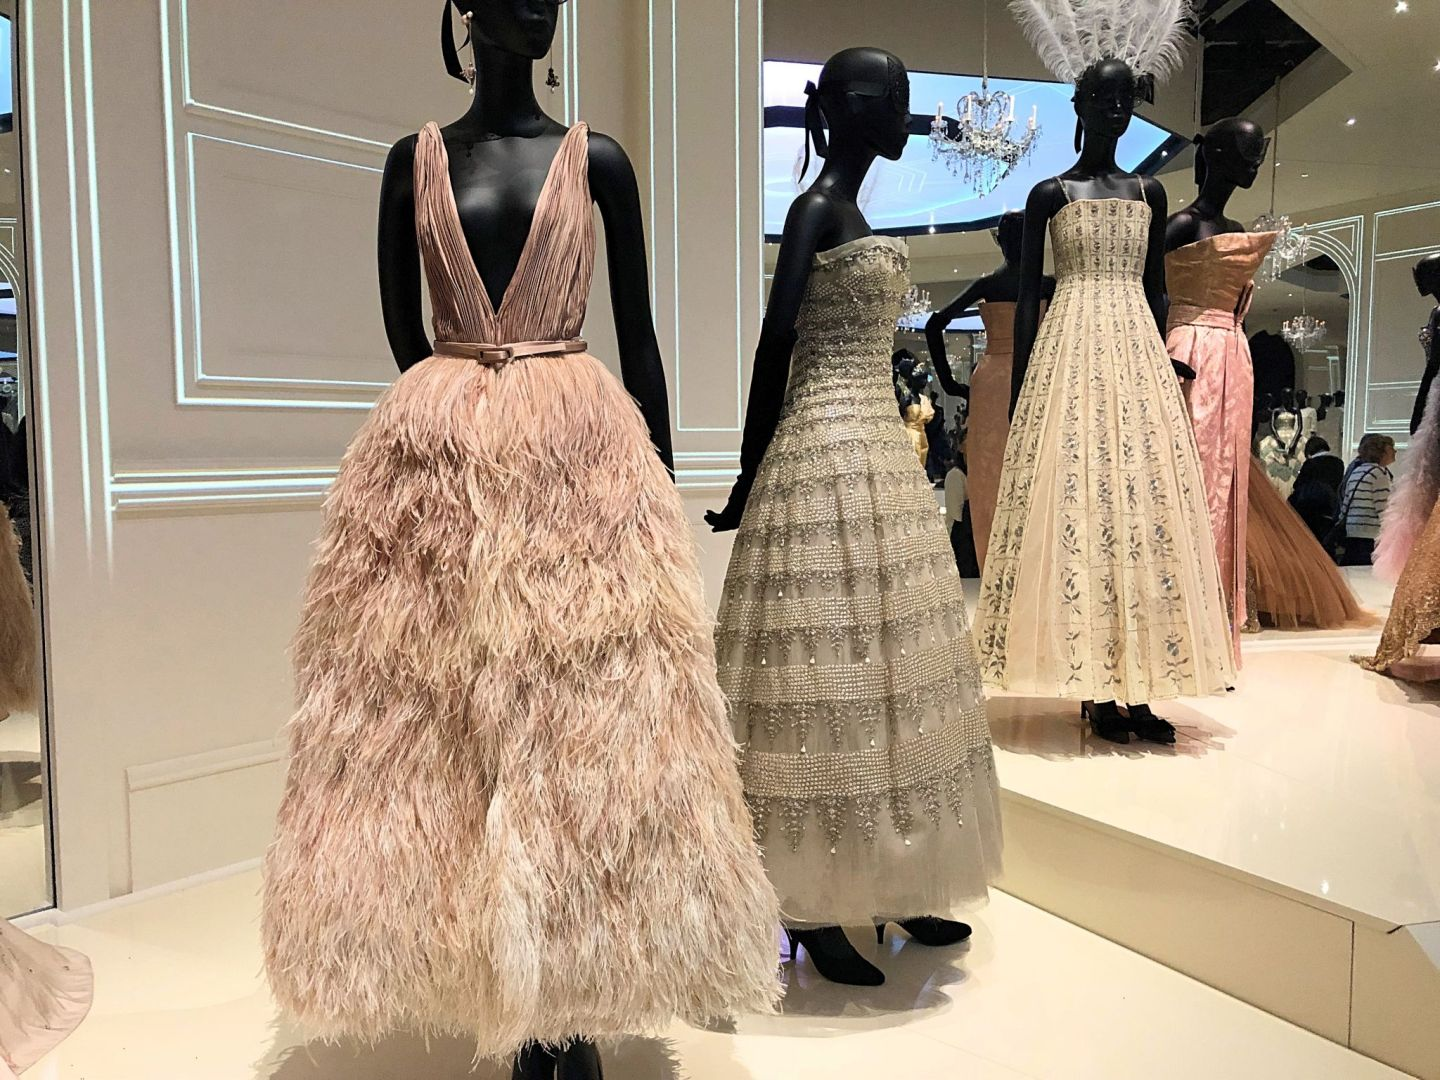 Christian Dior: Designer of Dreams at the V&A | LONDON | FREYA WILCOX